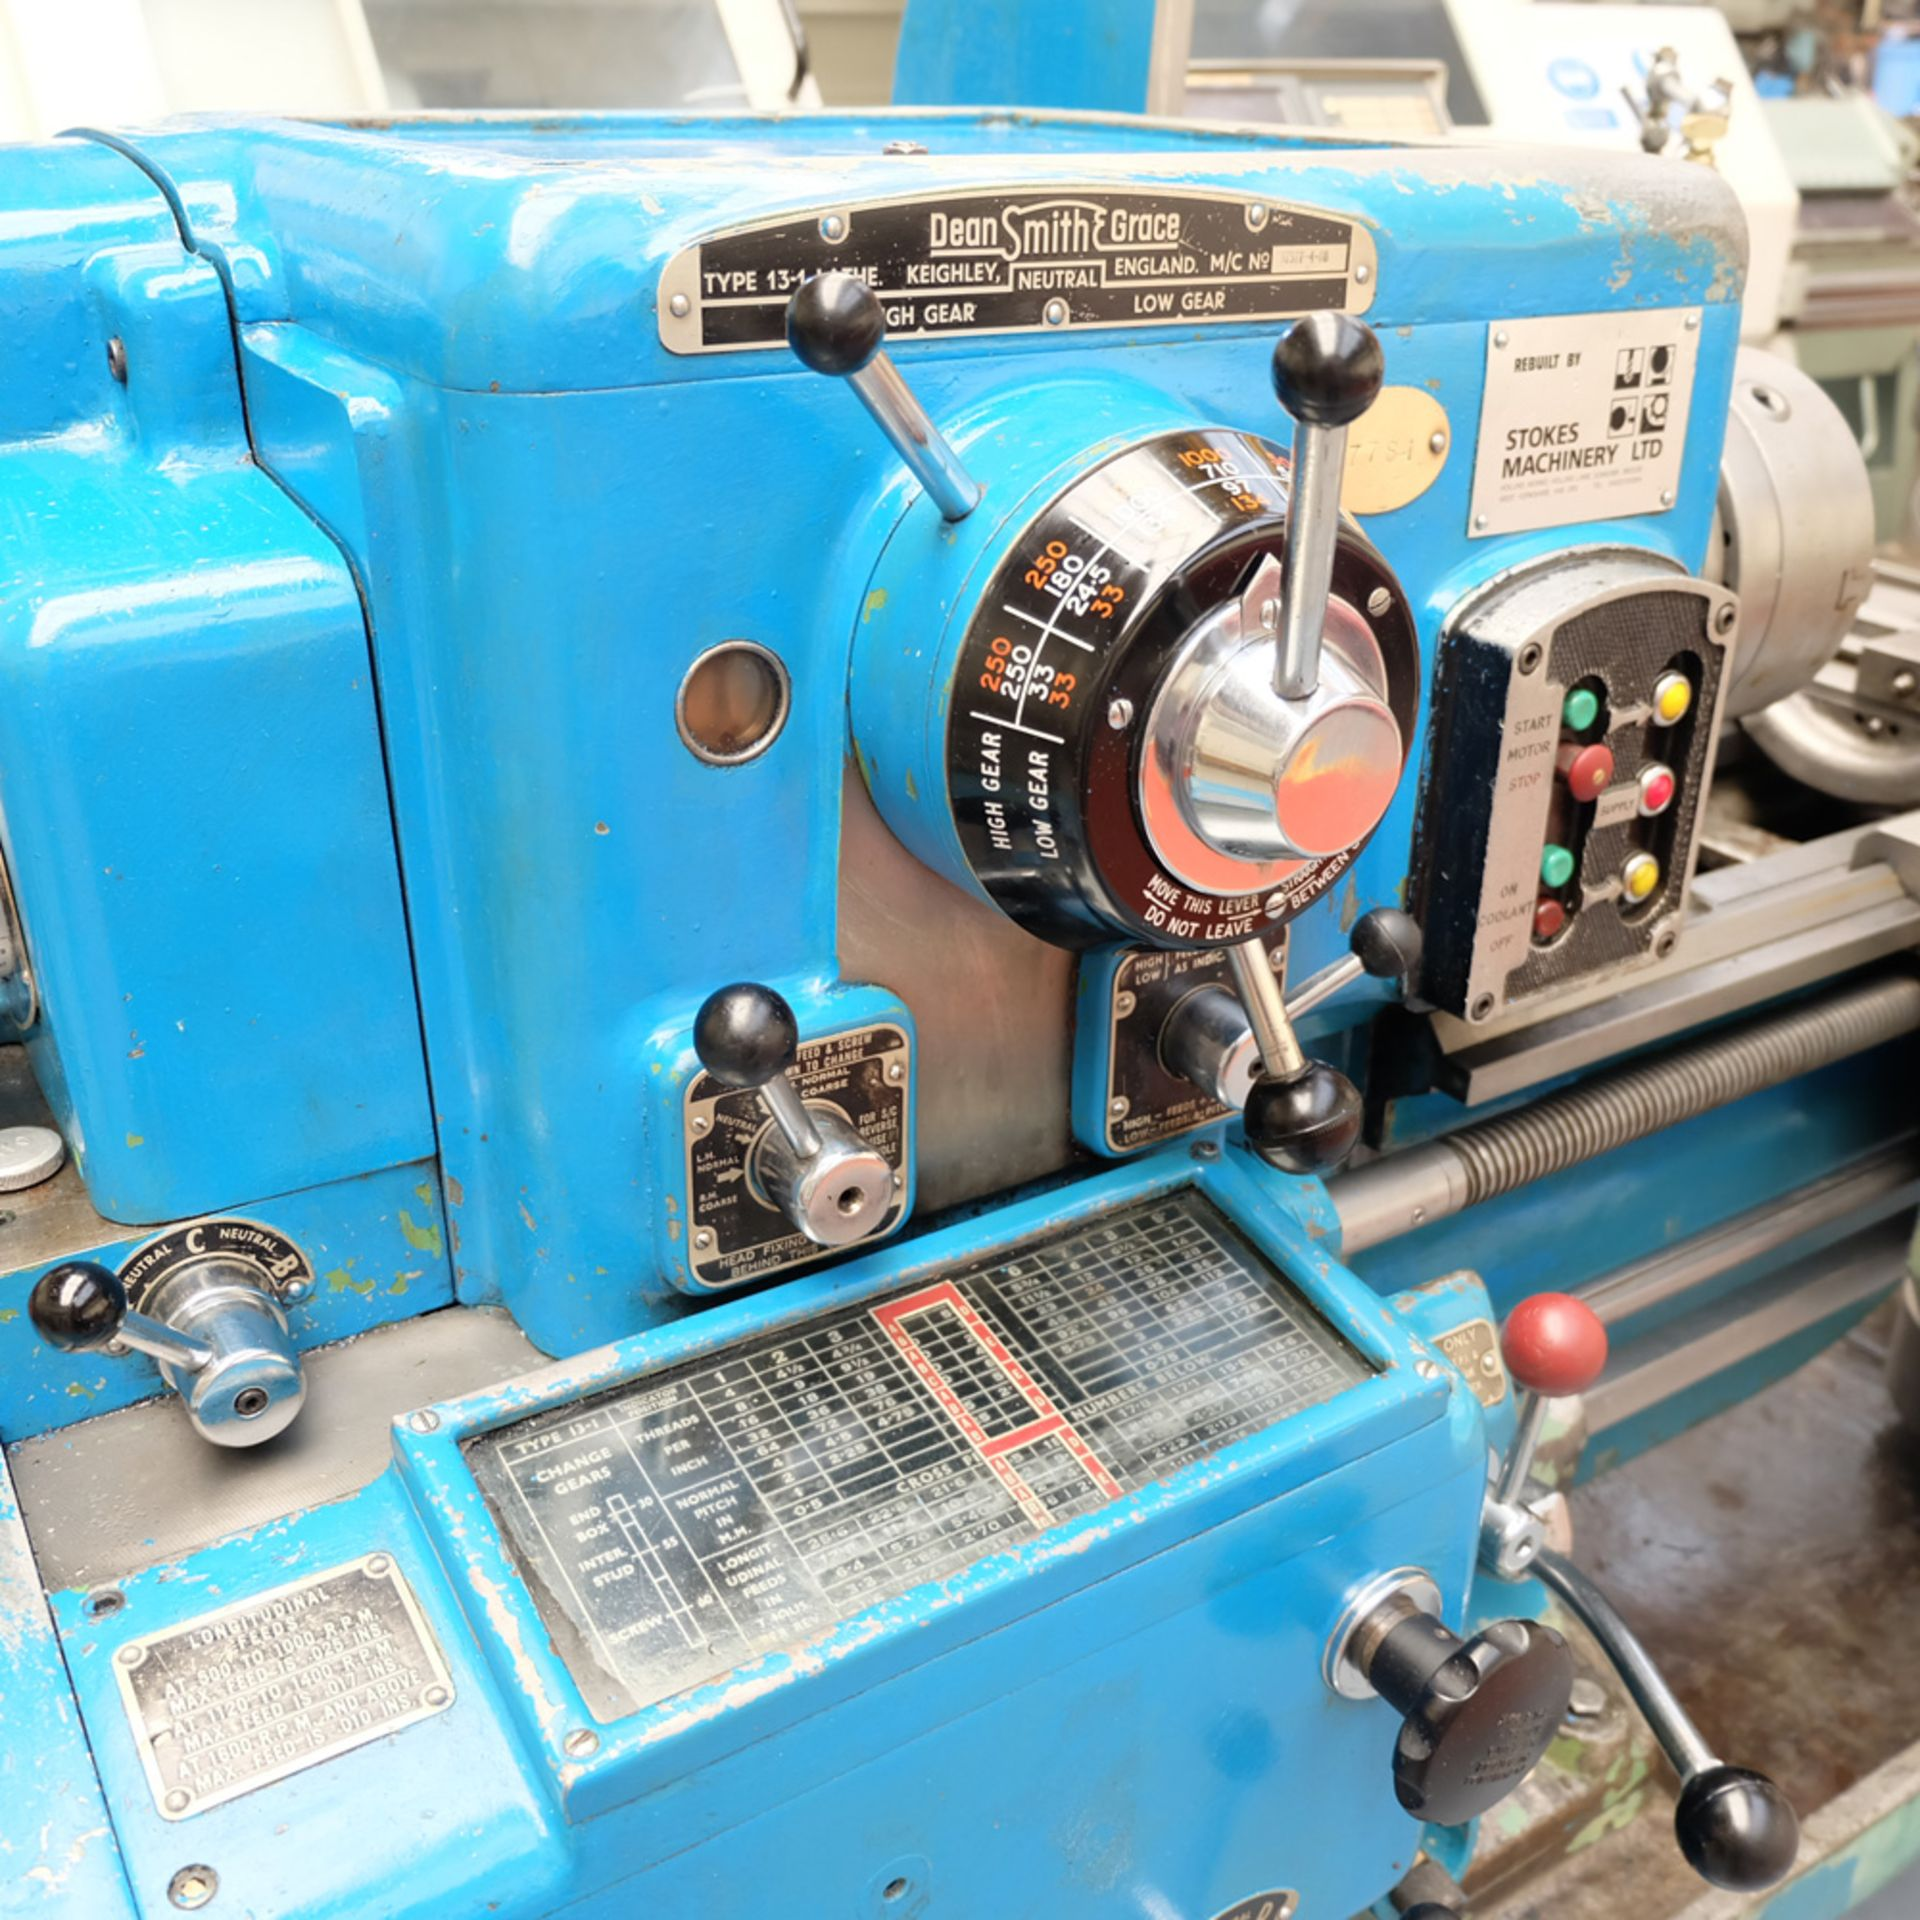 Dean Smith & Grace Type 13-1 Tool Room Centre Lathe. - Image 3 of 13